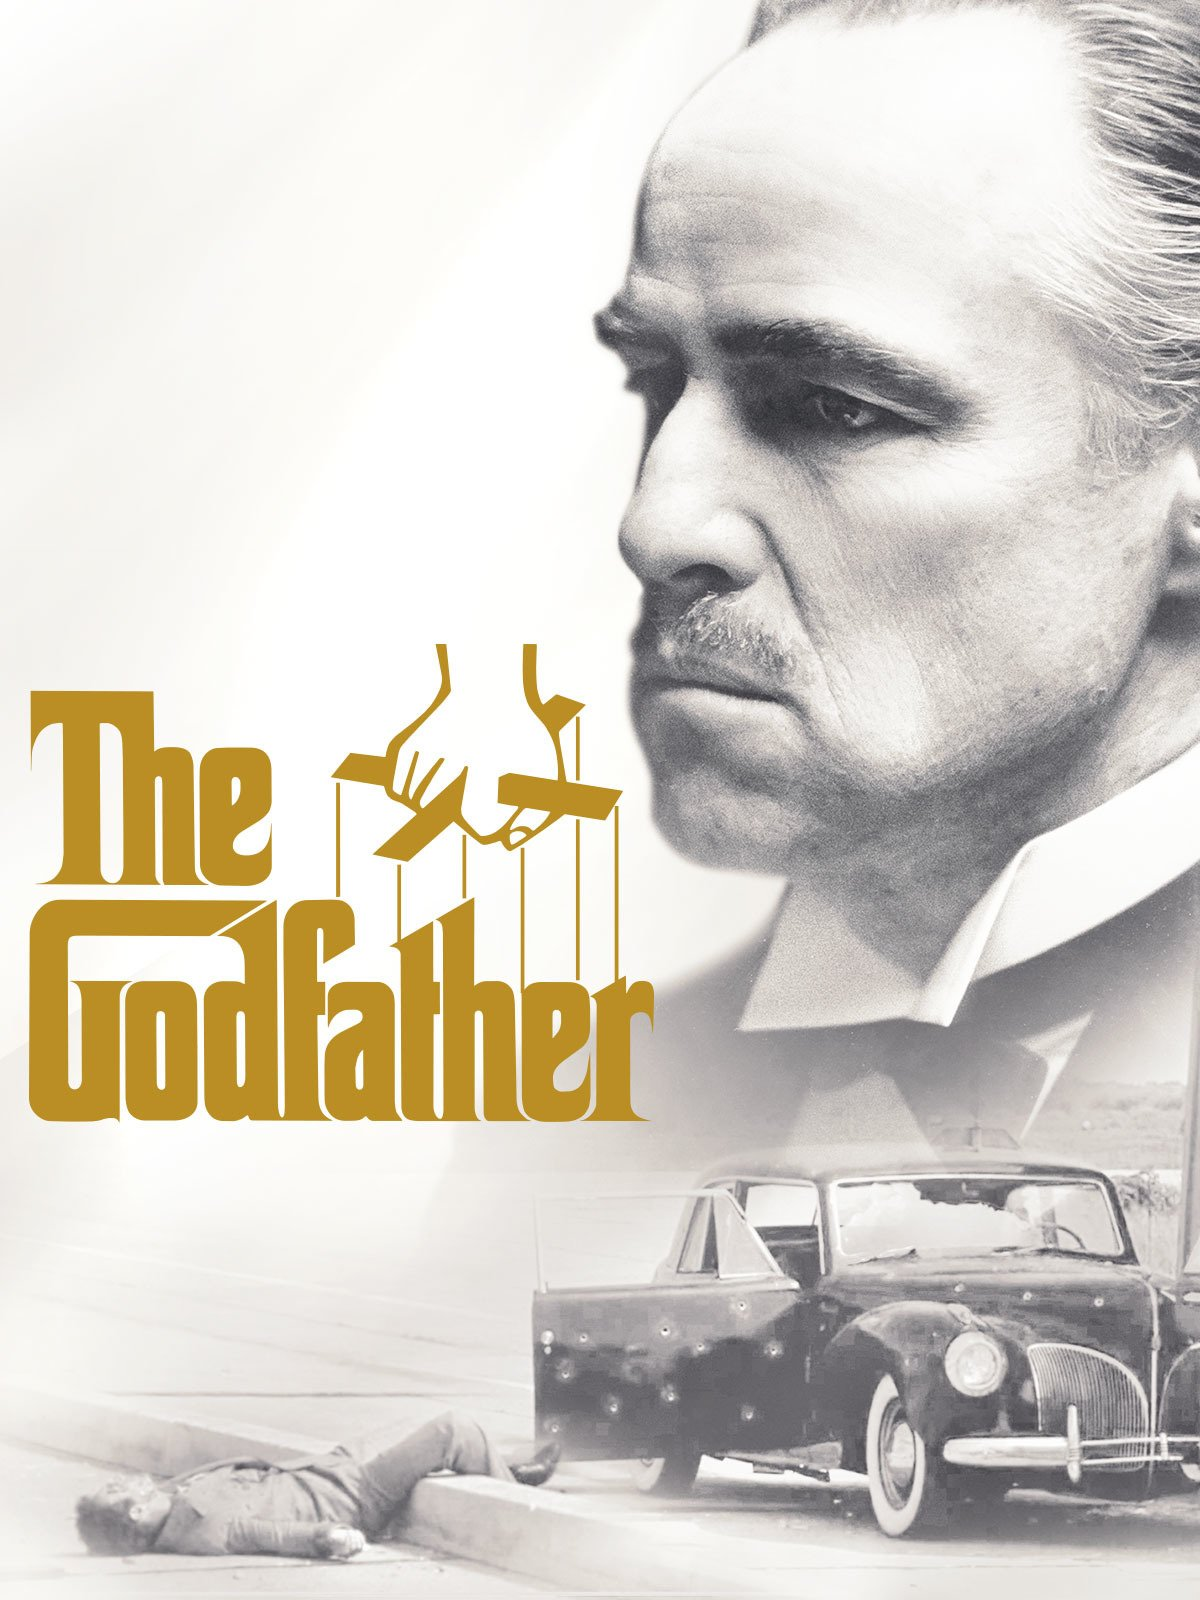 Godfather 1 Movie Poster - HD Wallpaper